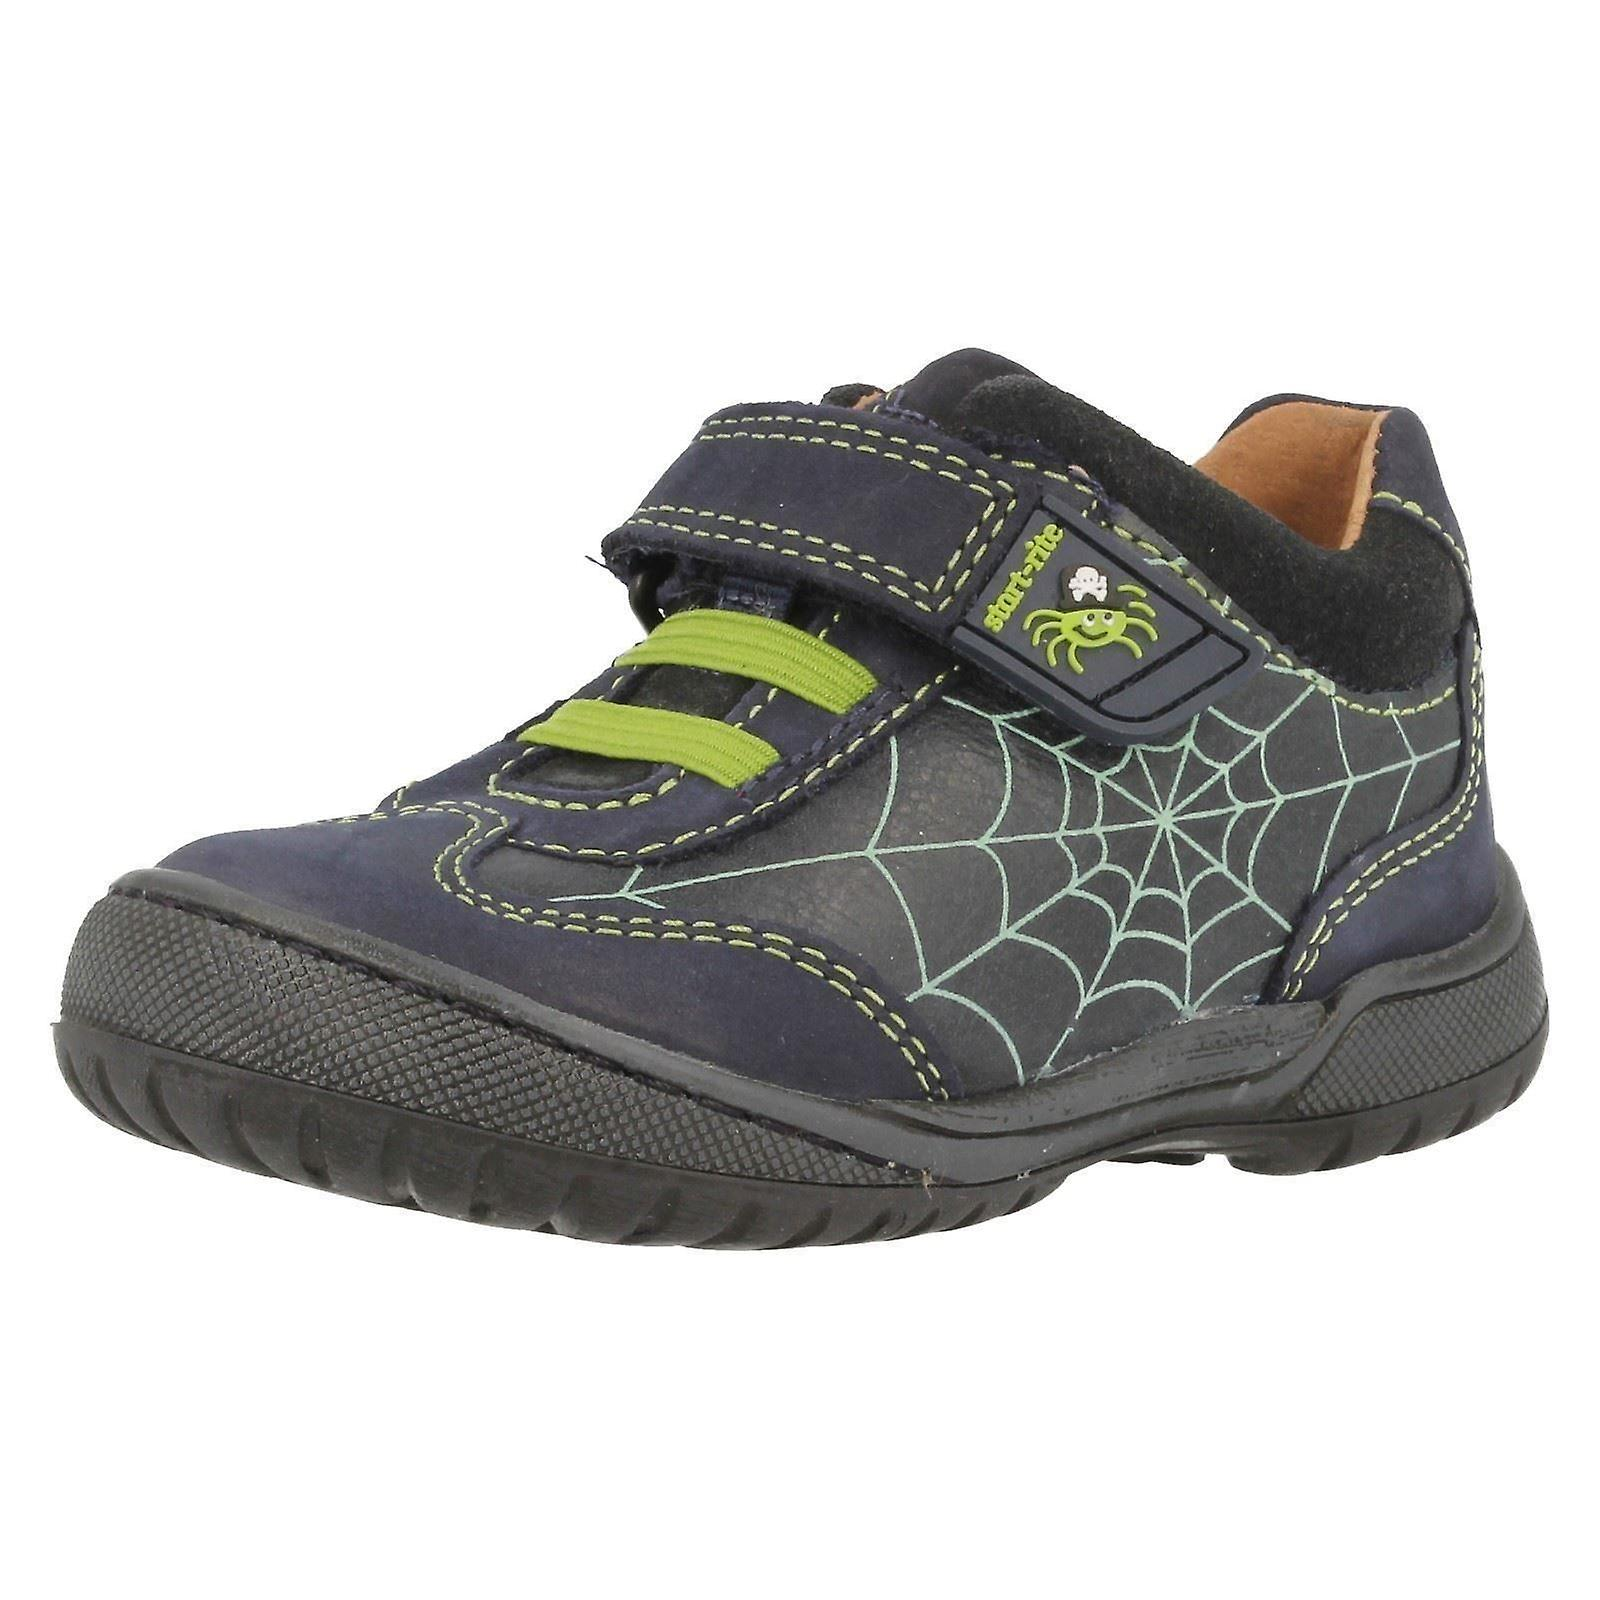 uk availability 50bc8 80278 Boys Startrite Startrite Boys Casual Shoes Incy Spider